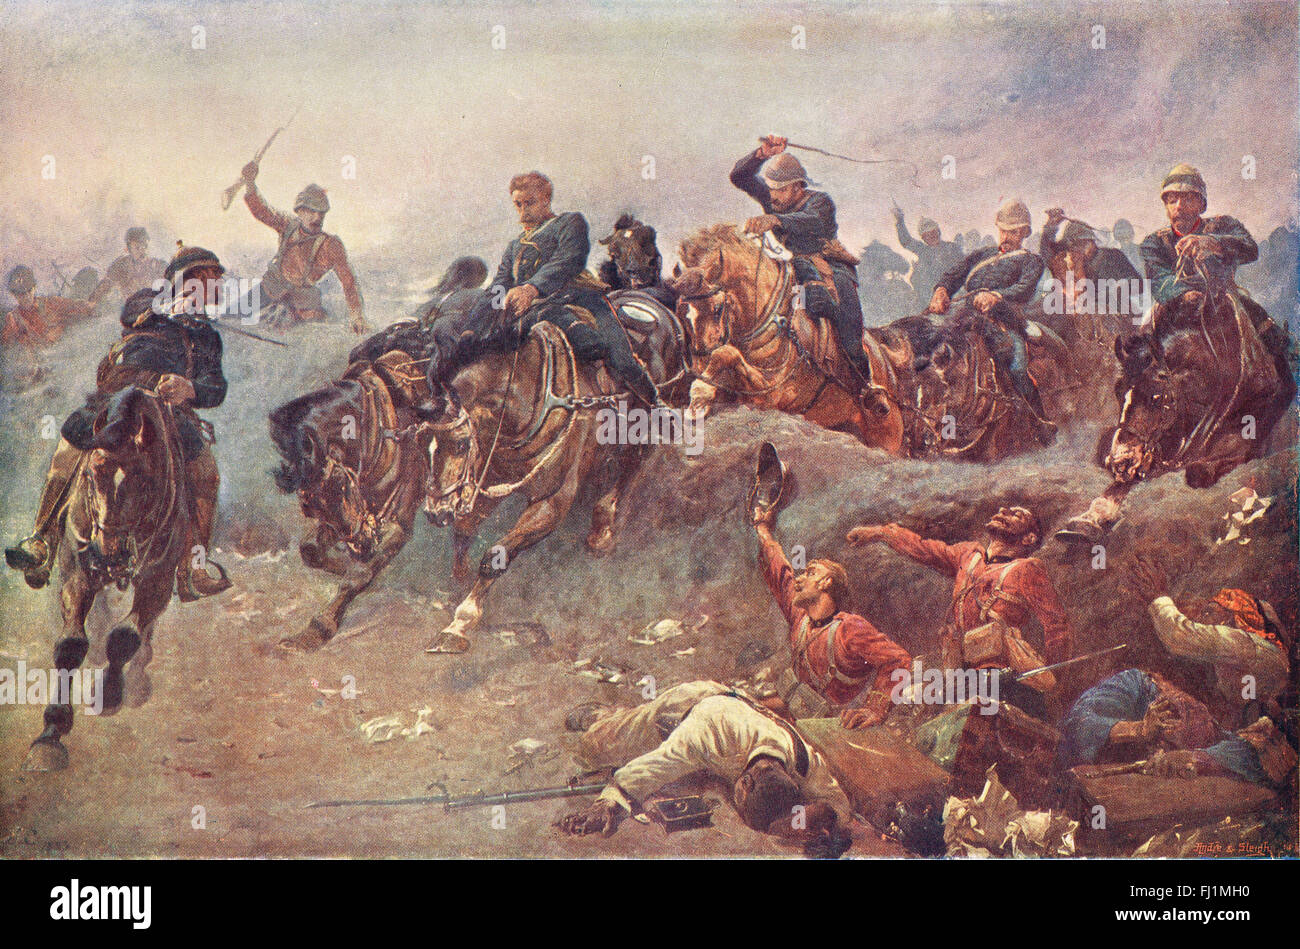 Battle of Tel-El-Kebir 1882 - Stock Image